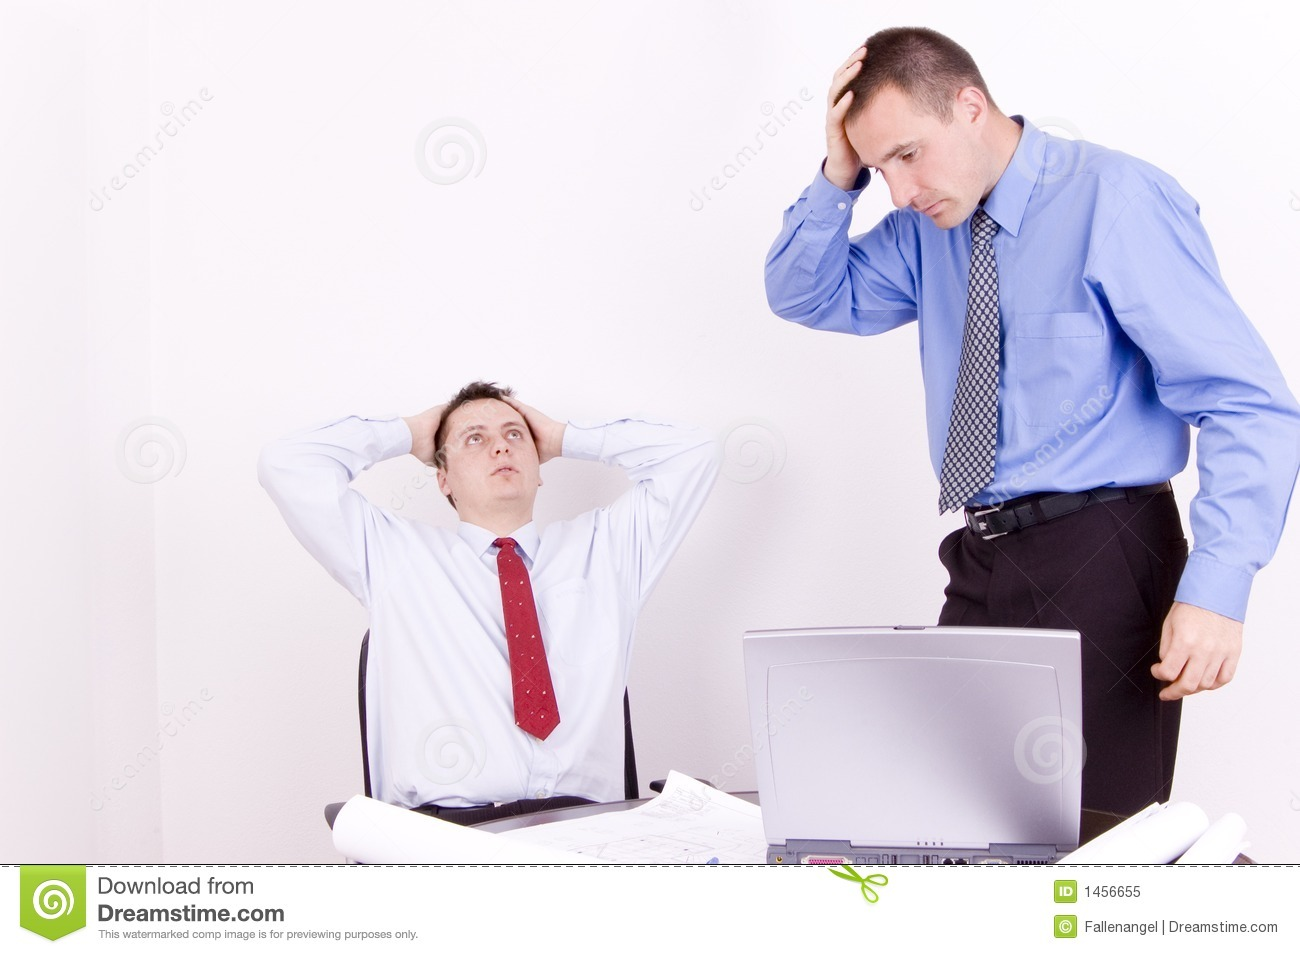 business problems stock image  image of suit  questioning